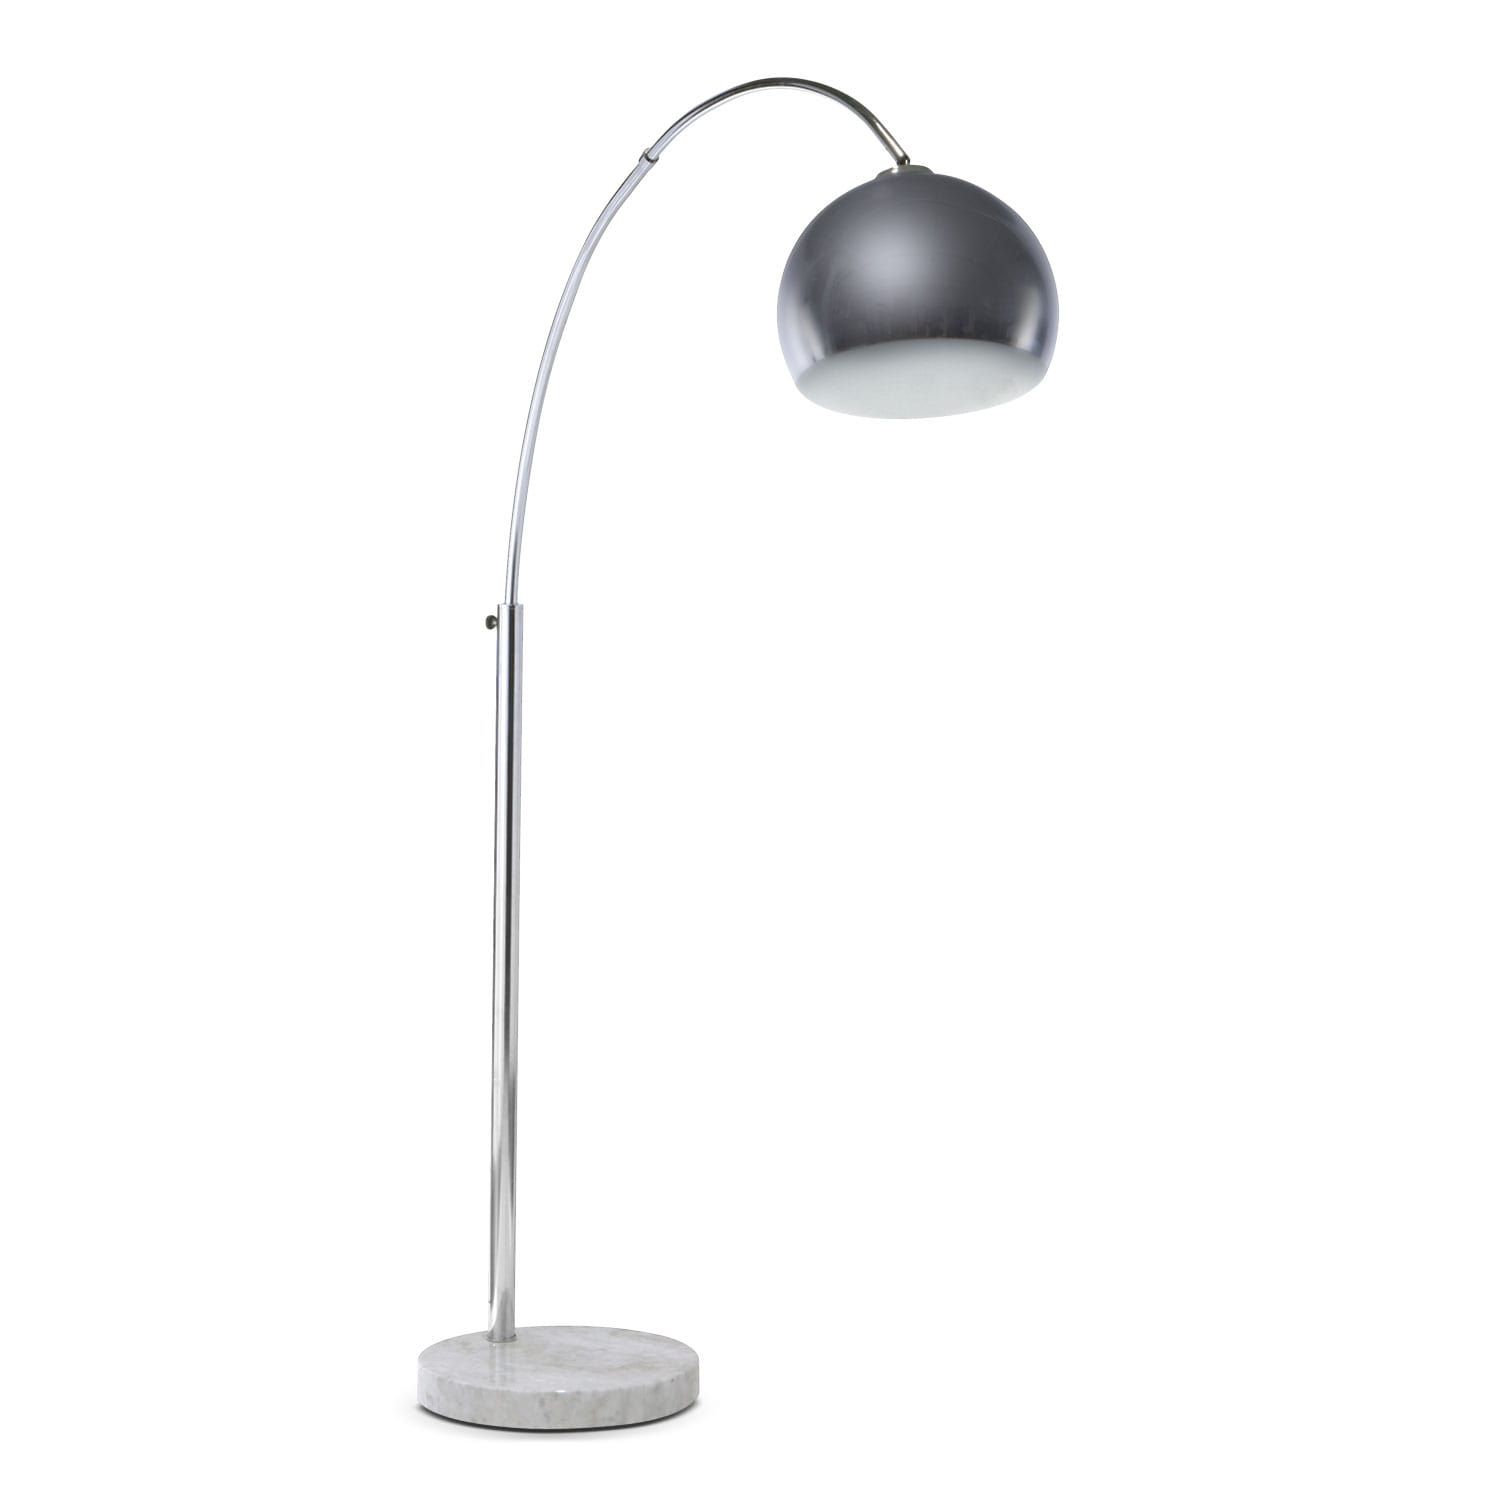 Home Accessories - Silver Bowl Arc Floor Lamp